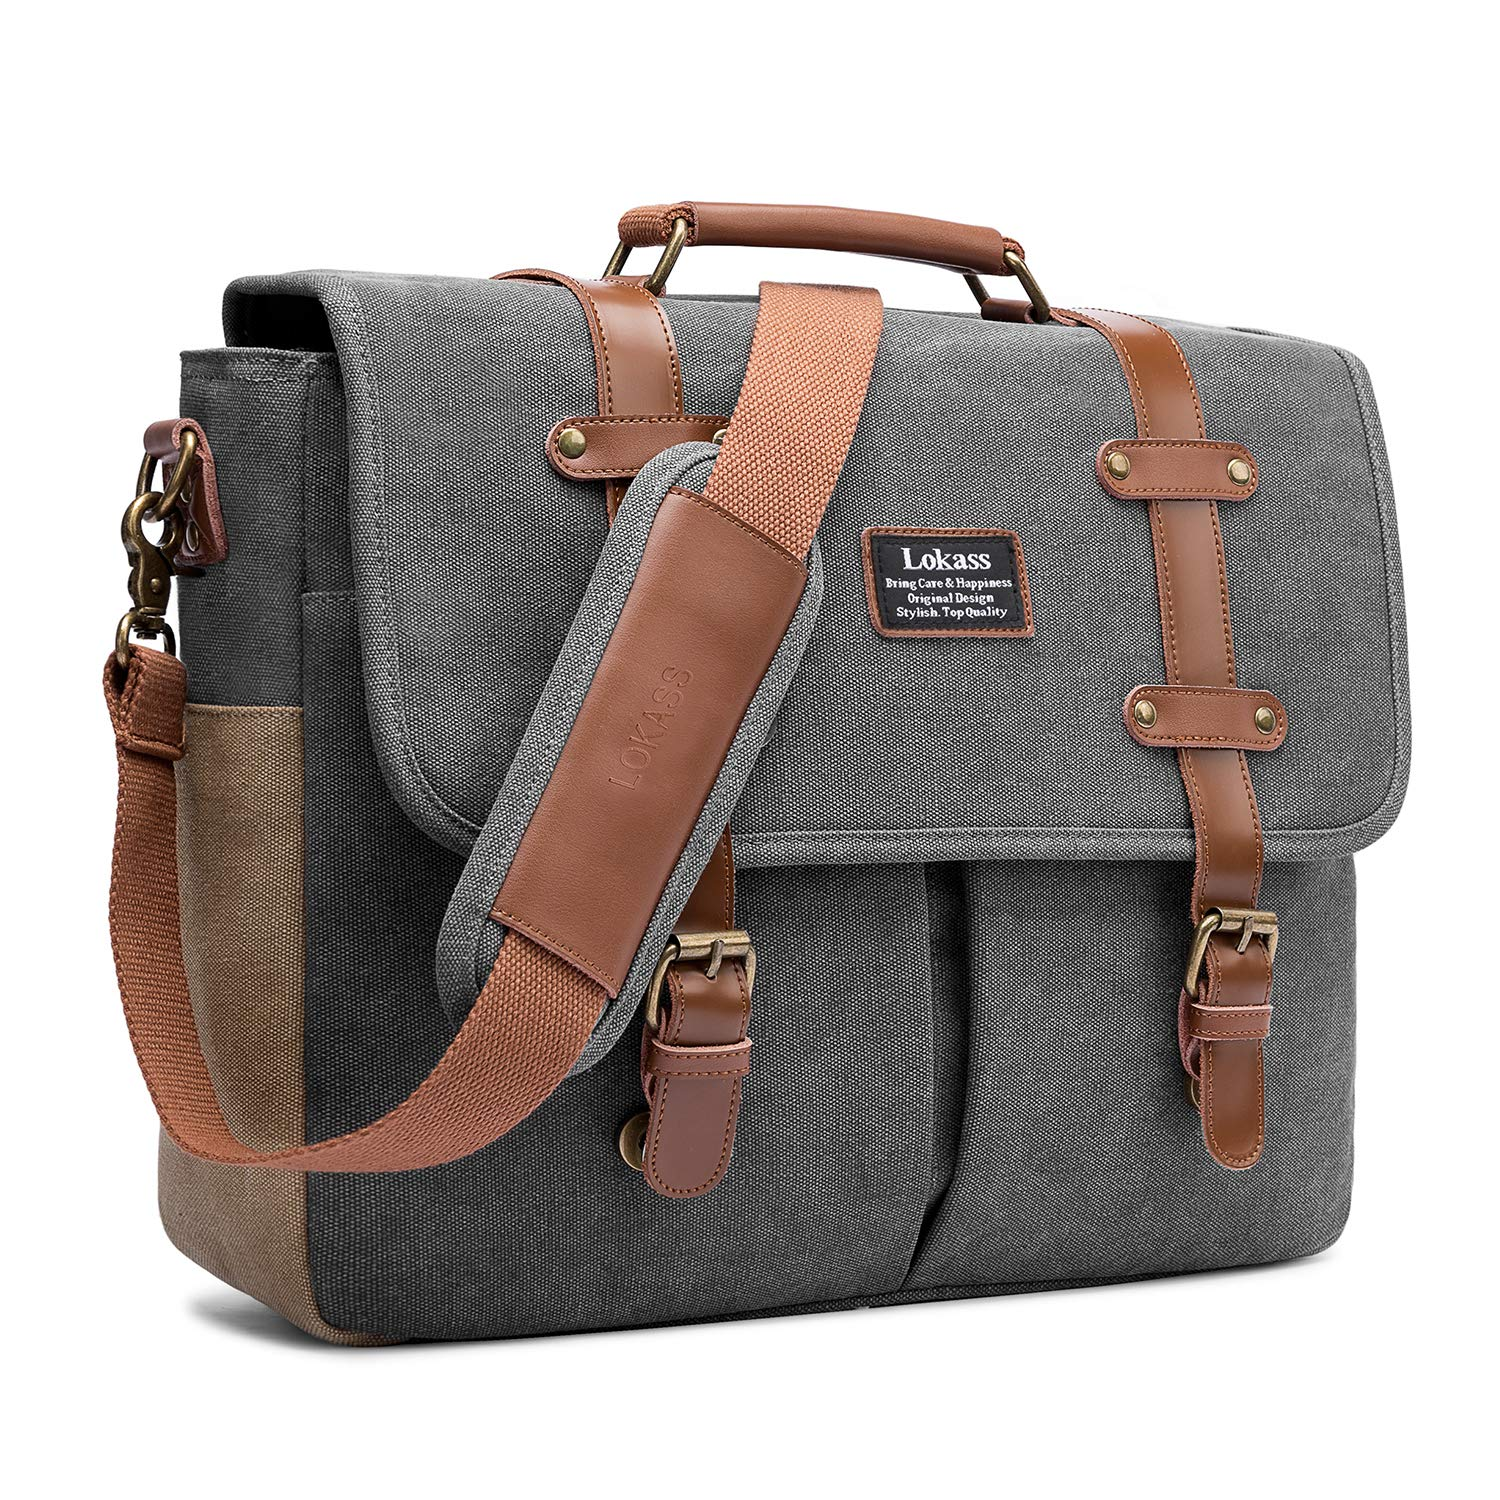 12685a2d303 Mens Messenger Bag, 15.6 Inch Laptop Shoulder Bag Canvas Business Briefcase  Large Vintage Satchel College Bookbag Retro Brown Leather Handbag Crossbody  Bag ...